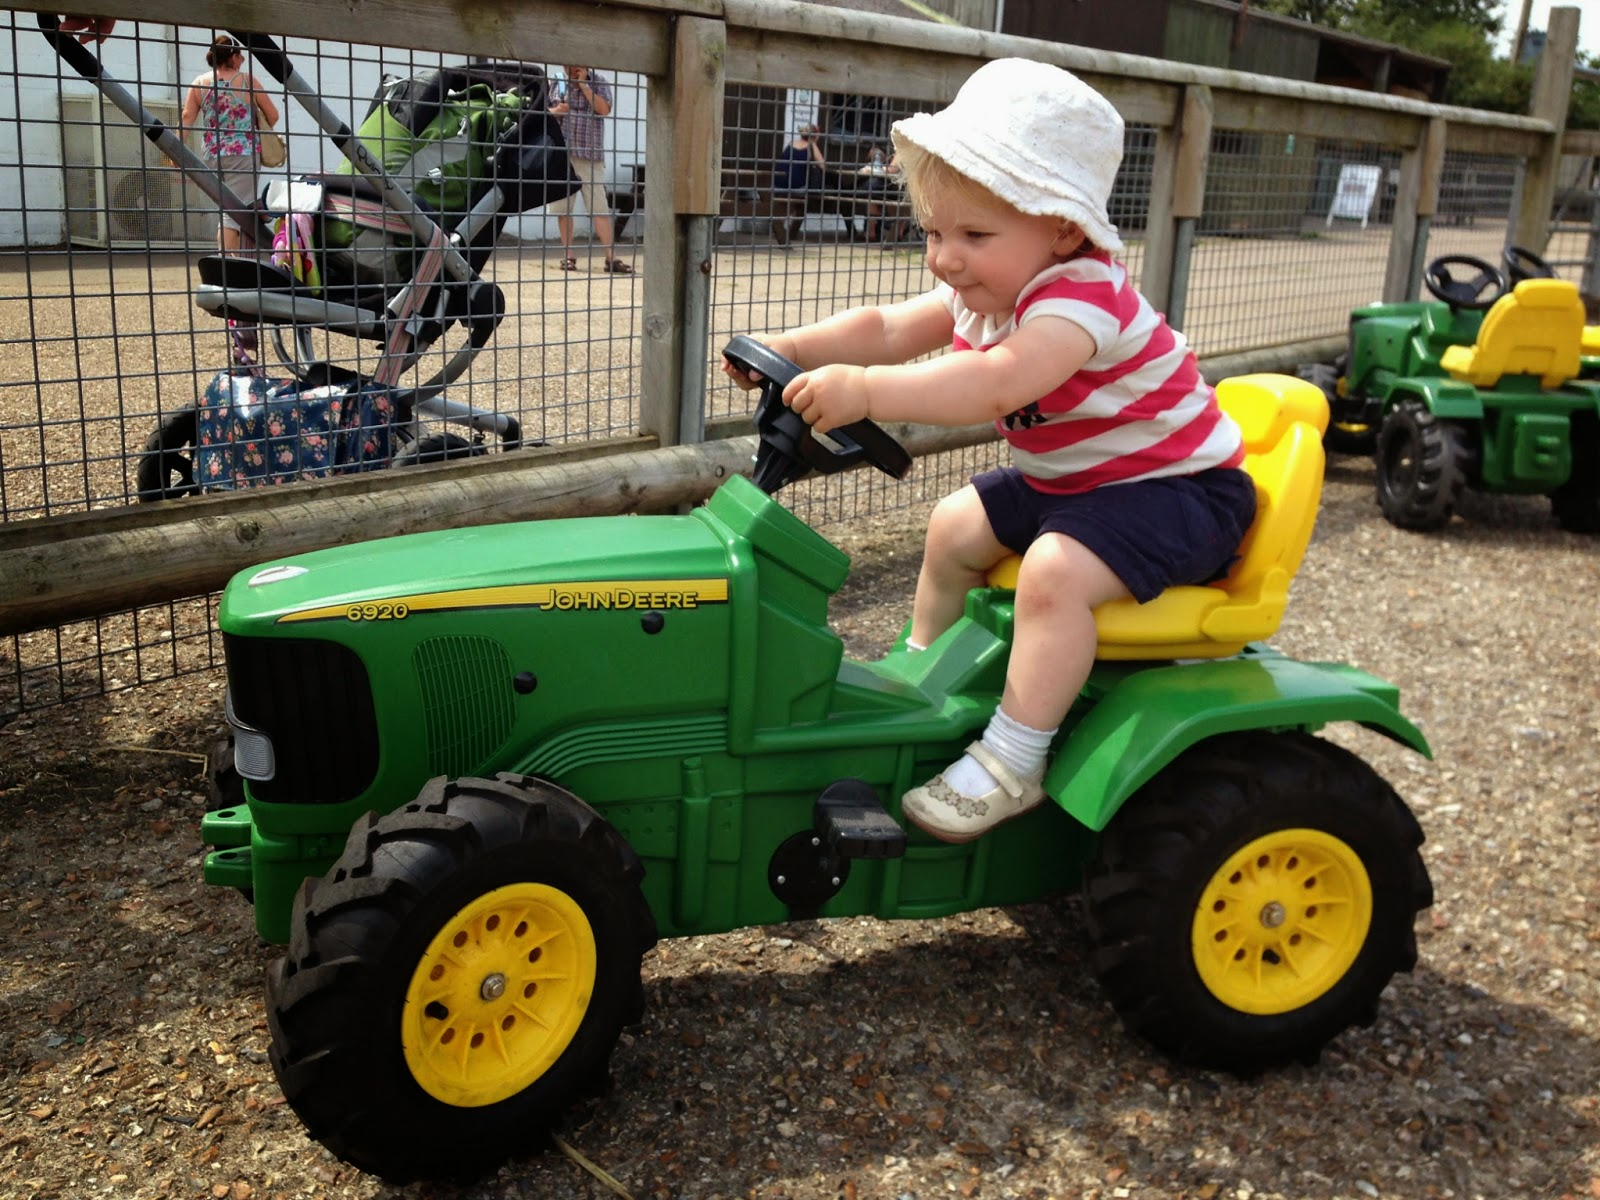 Tin Box Tot on a toy tractor